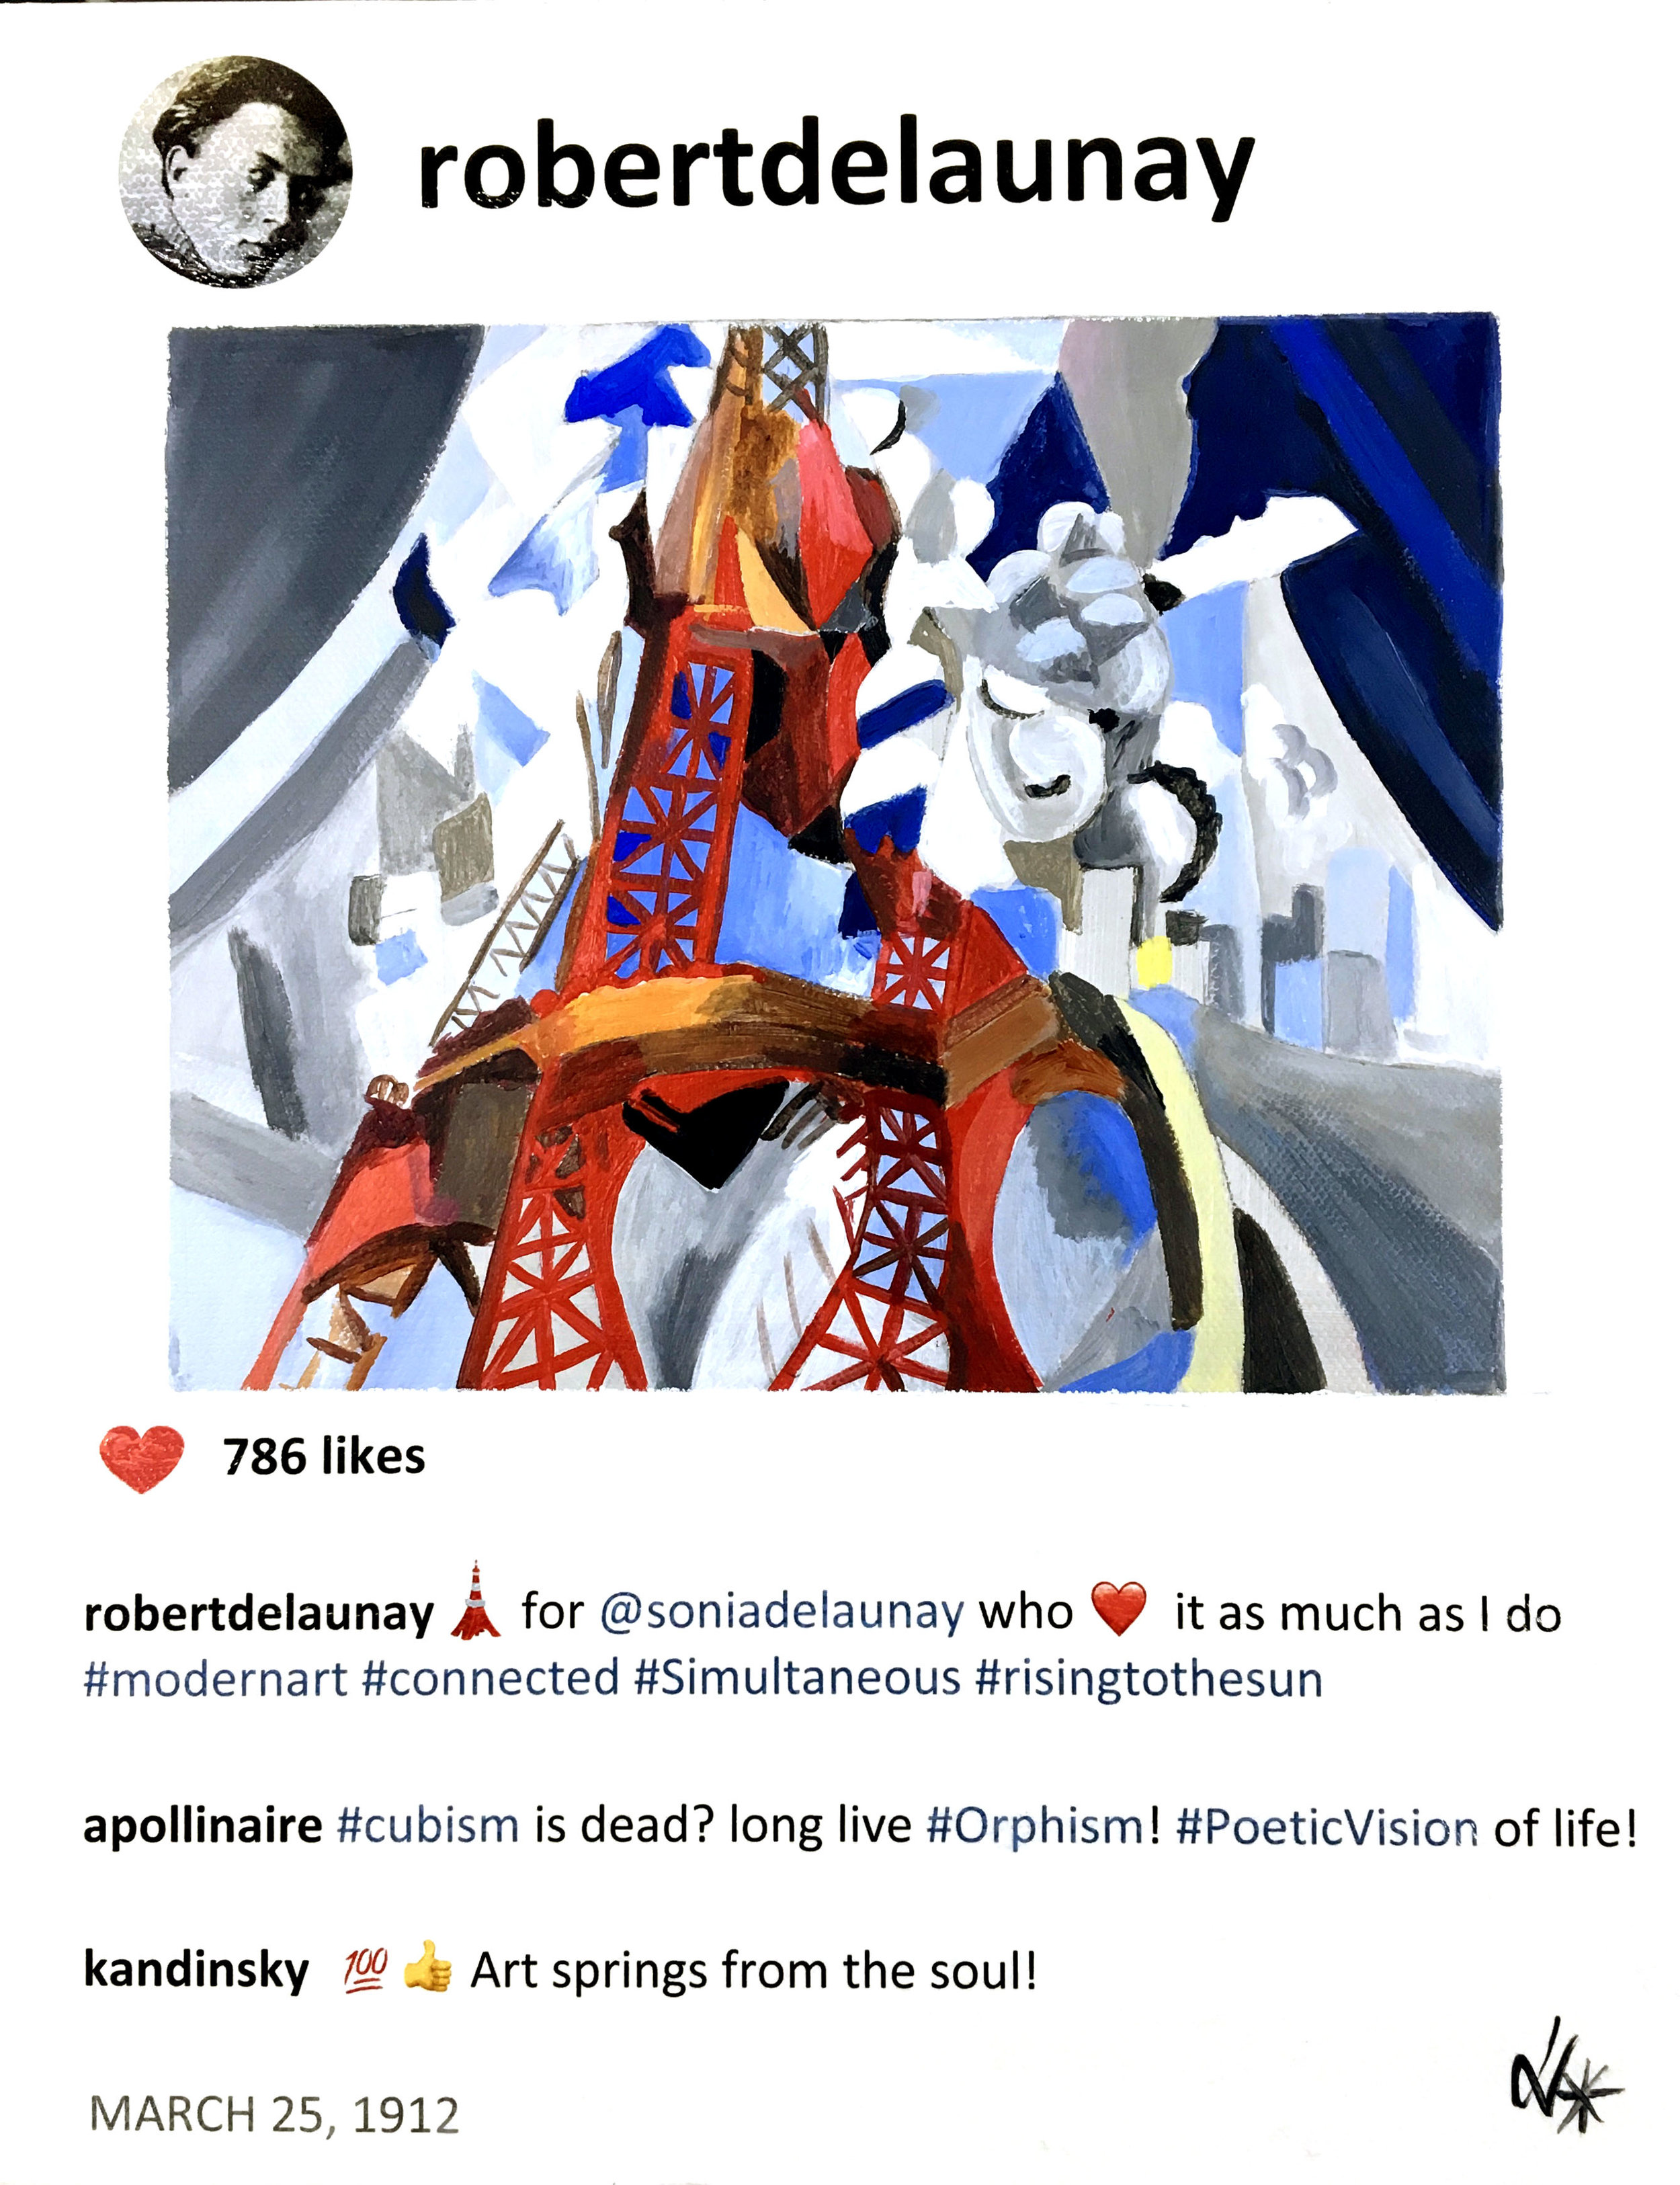 """Robert and The Red Eiffel Tower - #story.behind.the.artThe Eiffel Tower representing modernism inspired Robert Delaunay and he painted a series between 1909 and 1928. The first one was a celebration of his engagement with Sonia who loved the tower too. The Red Eiffel tower was painted in 1911/1912. 1912 was a turning point for Robert: in March he had his first major exhibition in Paris with works from his early Impressionist works to his Cubist Eiffel Tower paintings. It was commented that he broke away from cubism through his use of color rejected by other cubist artists.Art Critic Guillaume Apollinaire argued: 'If Cubism is dead, long live Orphism'' and later that the avant garde painters of that time 'have achieved a more internalized, more popular and more poetic vision of the universe and of life'.In 1911 Kandisky had invited Robert to join the The Blue Rider, a Munich-based group of artists and his comment is based on his quote """"That is beautiful which is produced by the inner need, which springs from the soul."""" Sources: The New Art of Color. 1978. Arthur A. Cohen. The Diaries of Paul Klee, 1964Robert and The Red Eiffel Tower, 2019, Acrylic on canvas, 14x11x1.5 in."""